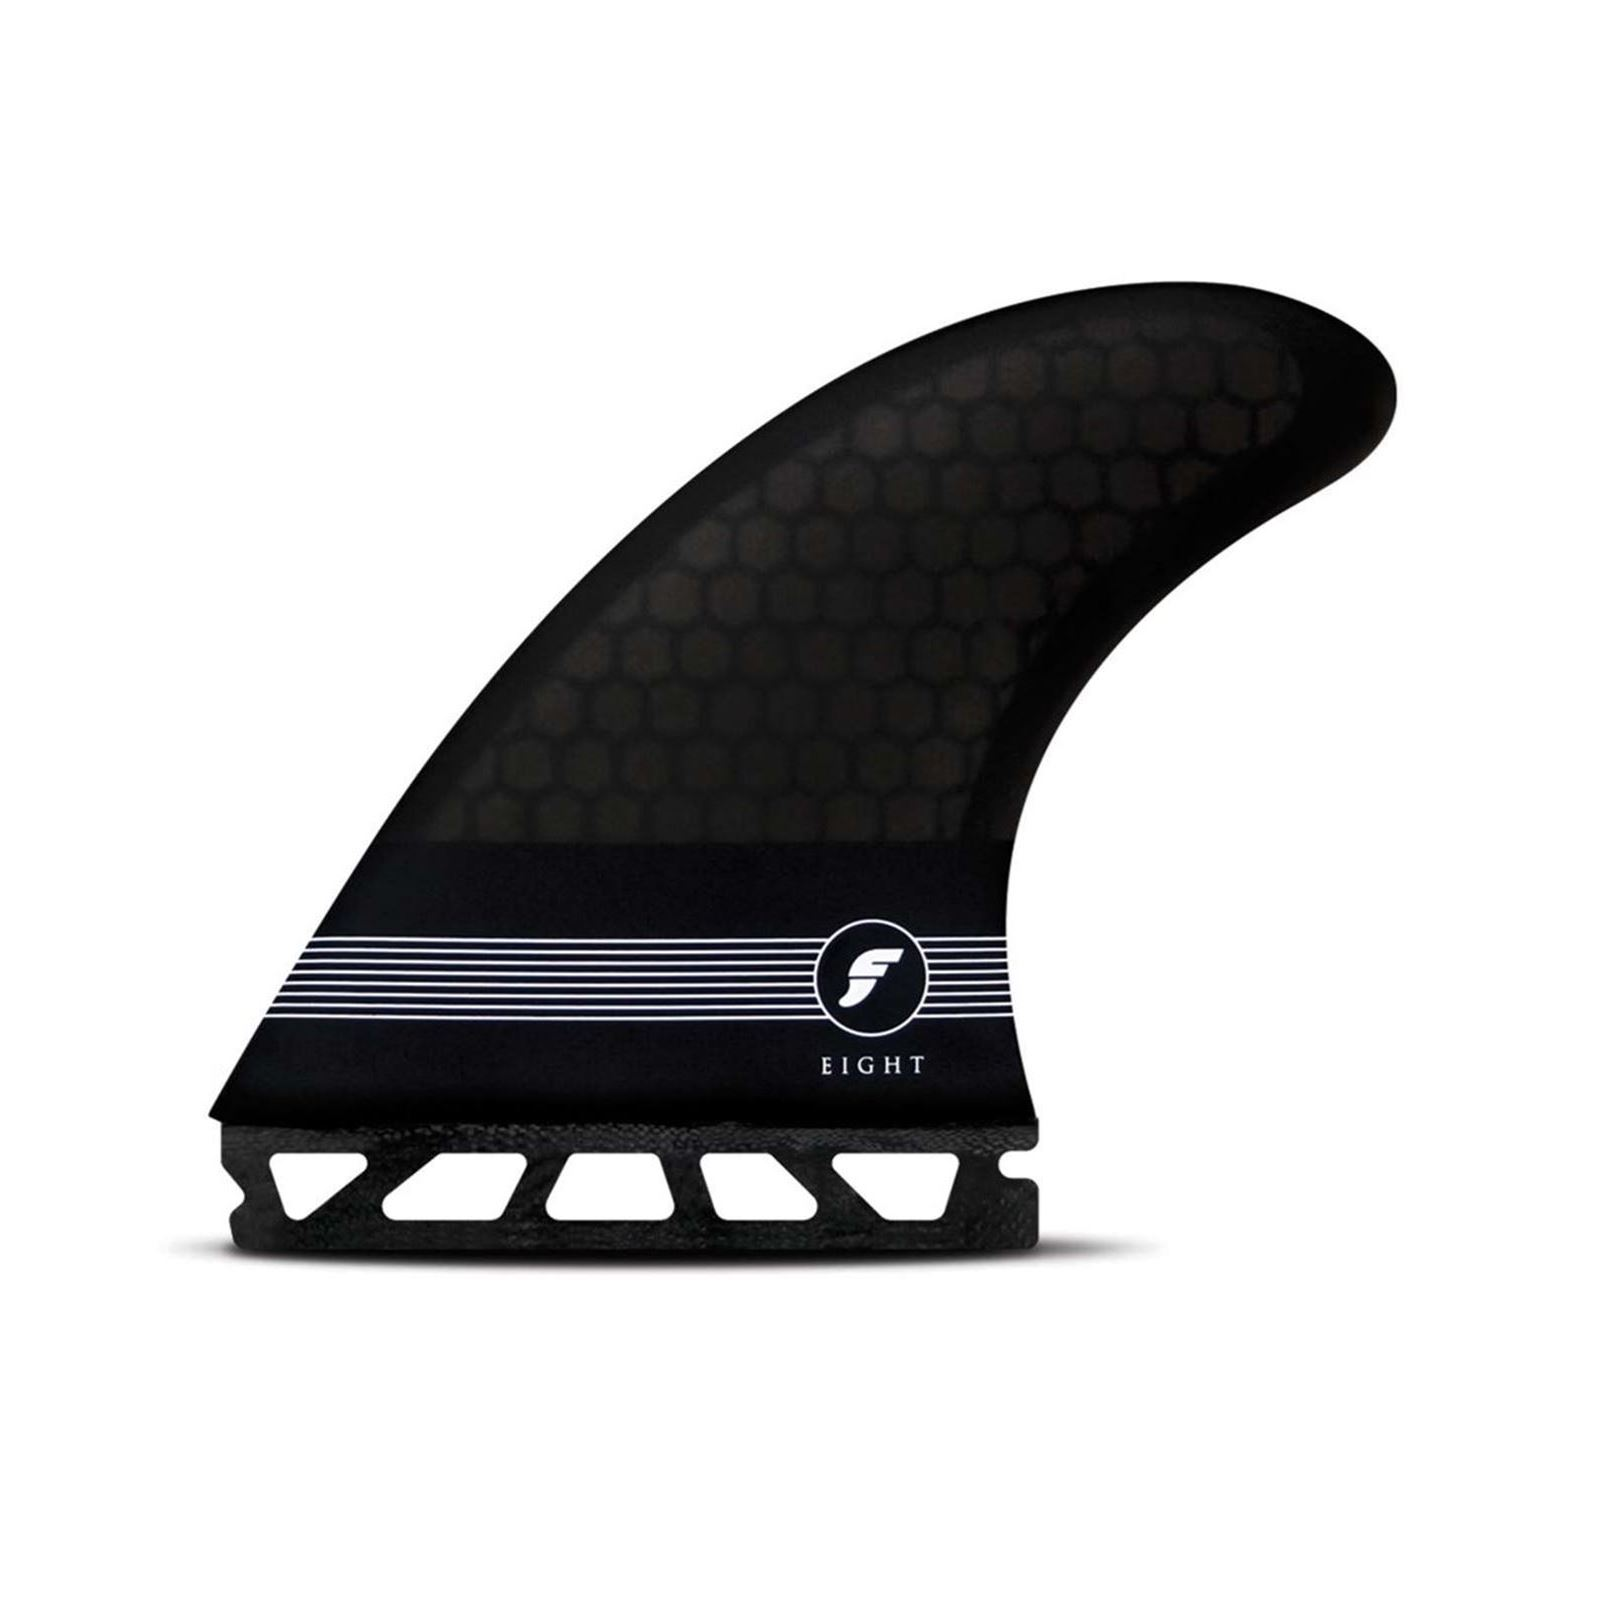 FUTURES Thruster Fin Set F8 Honeycomb